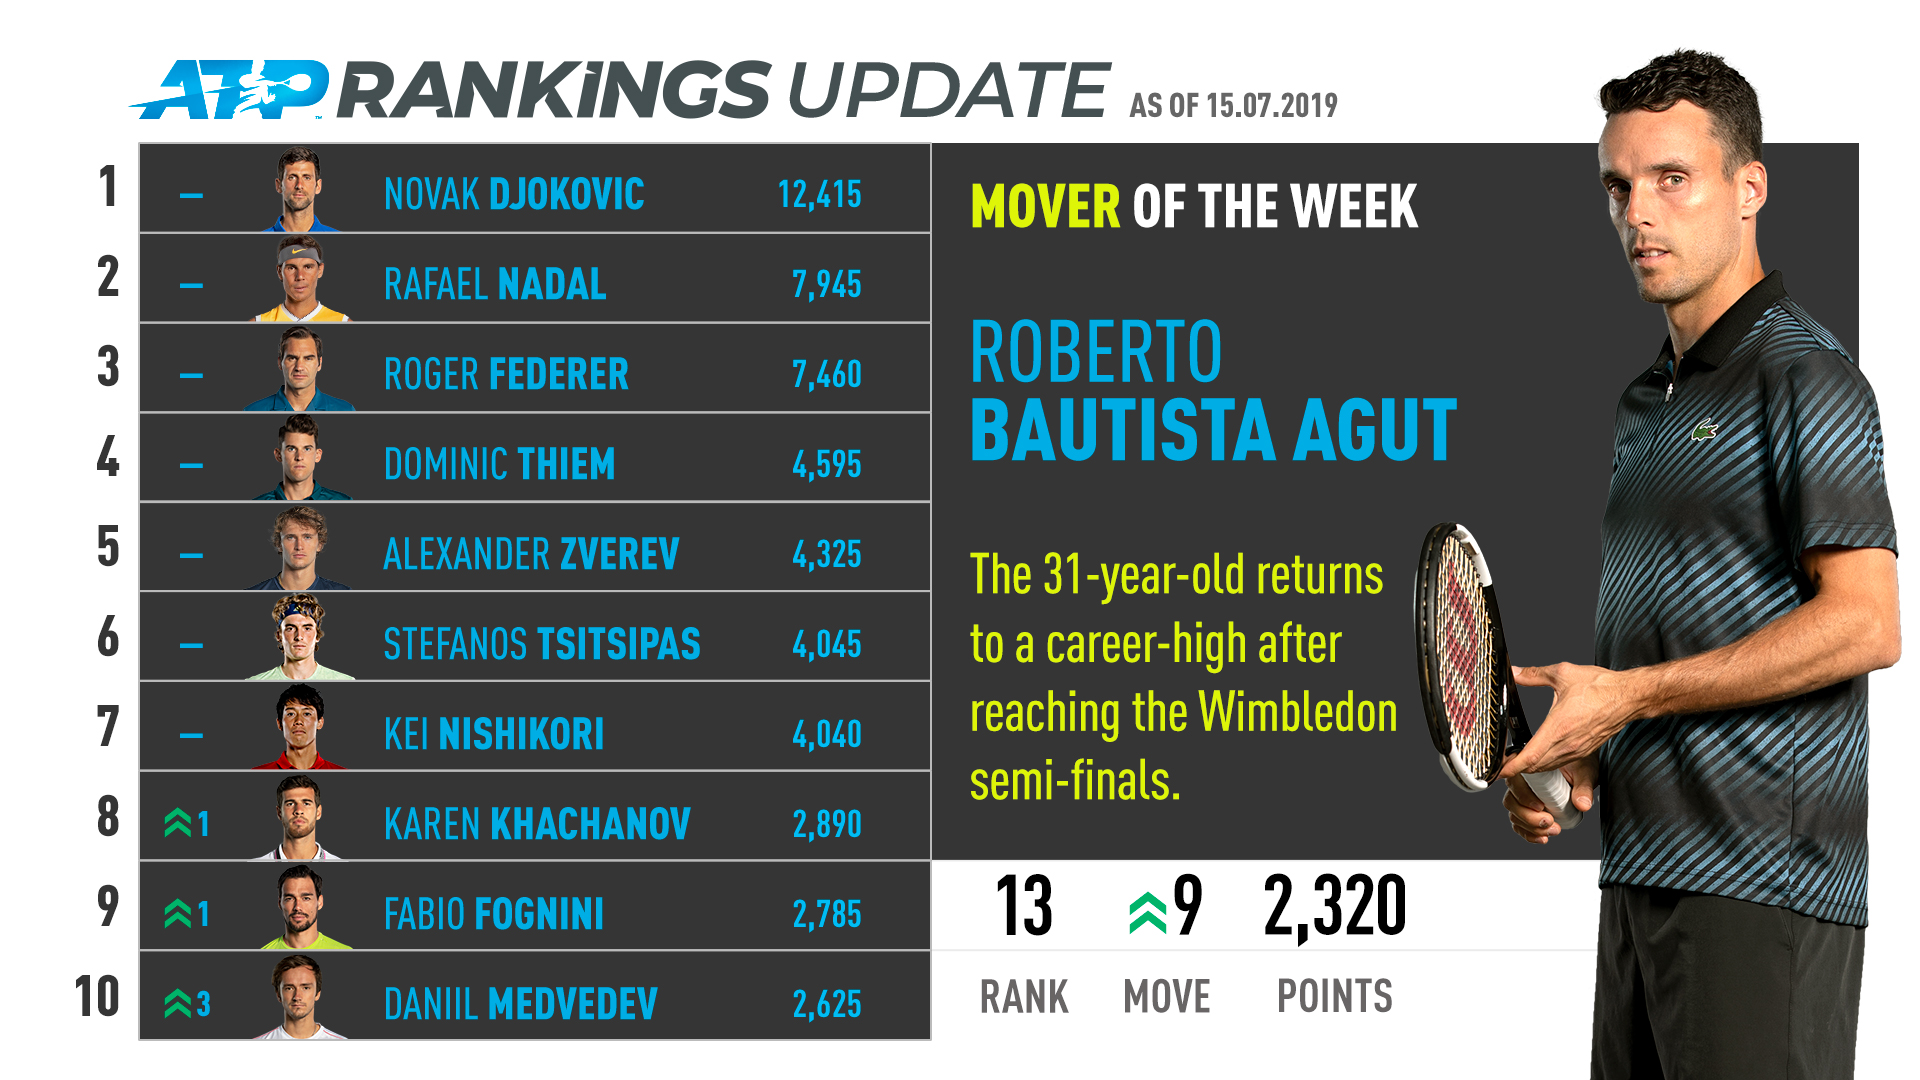 Roberto Bautista Agut jumps nine positions to No. 13 in the ATP Rankings after his run to the semi-finals at Wimbledon.